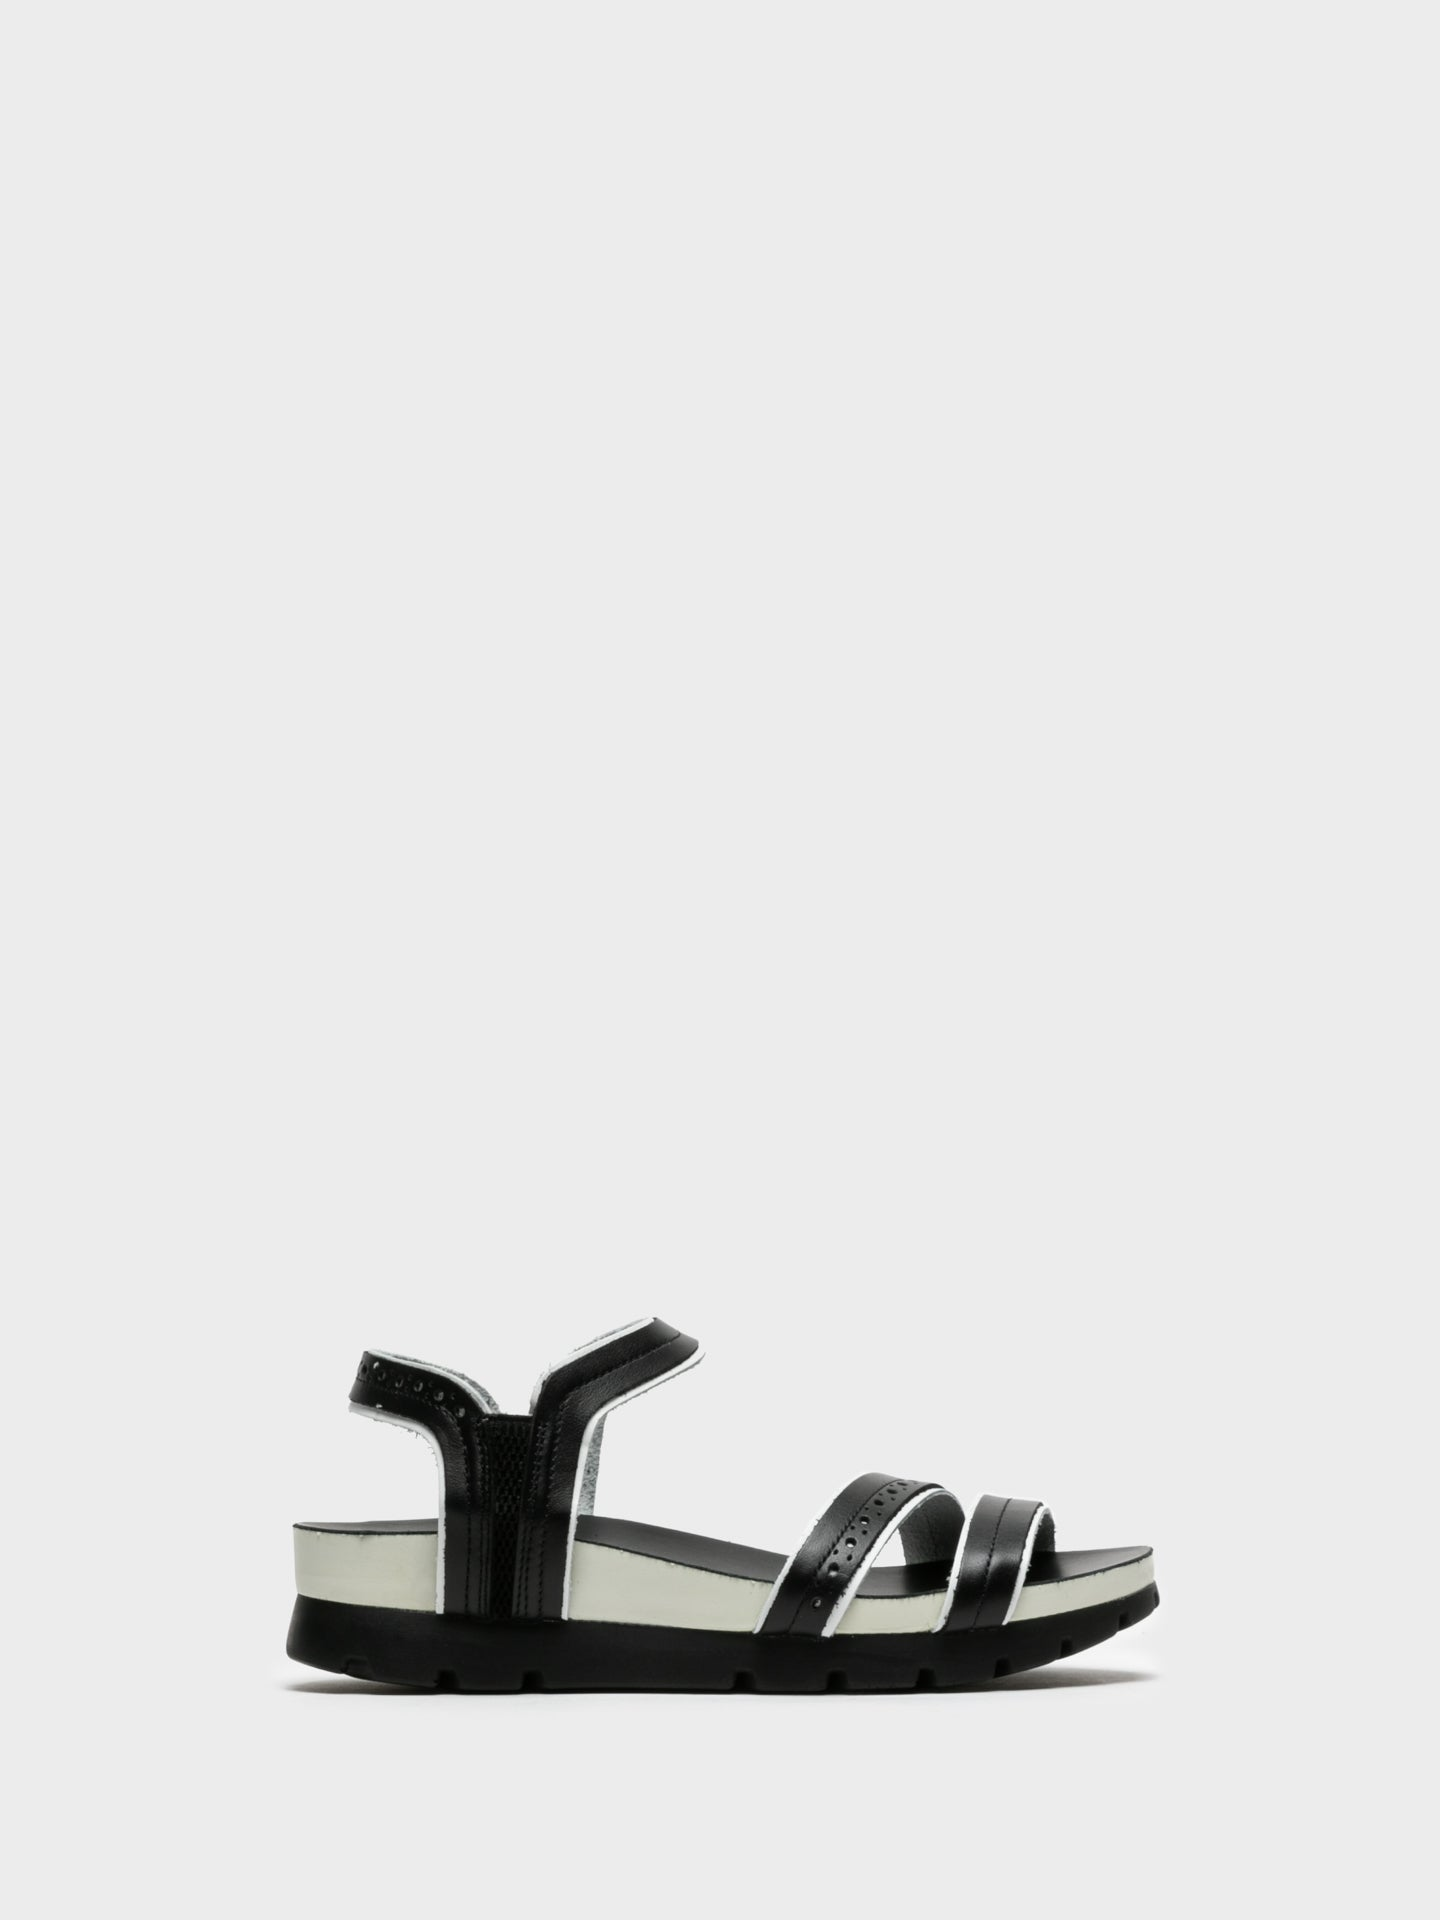 Camport Black White Sling-Back Sandals